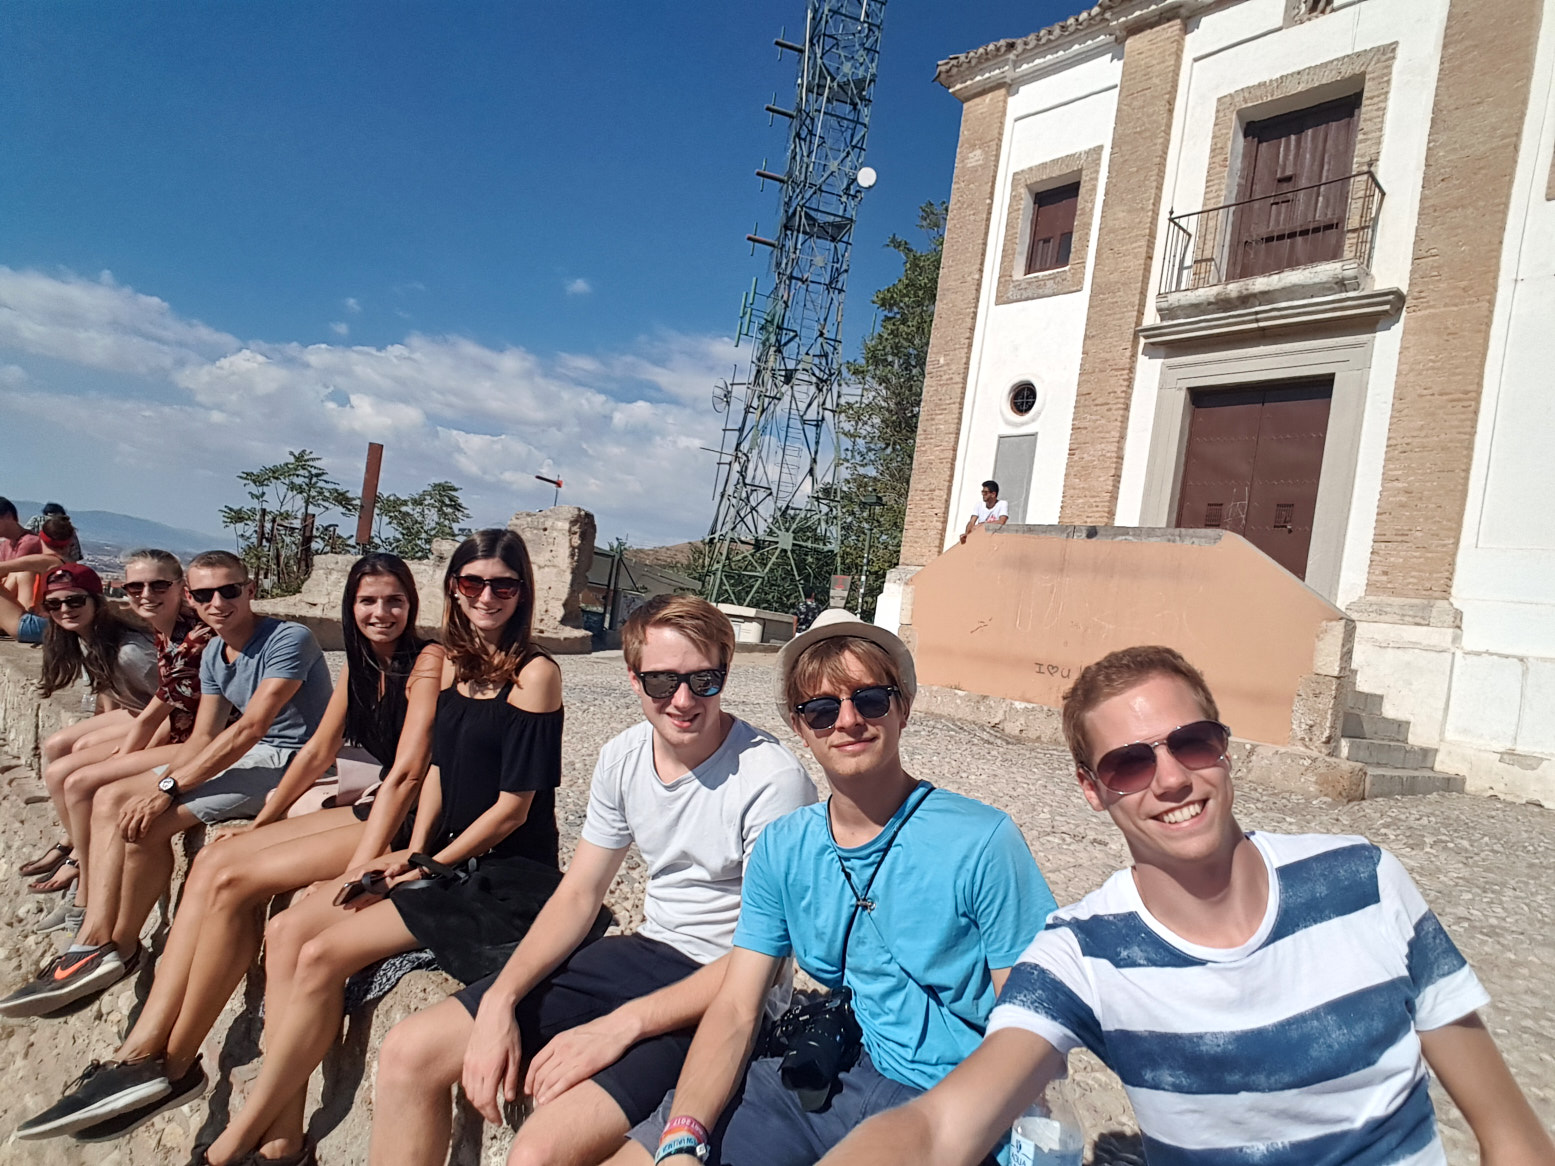 Second Group picture in Granada